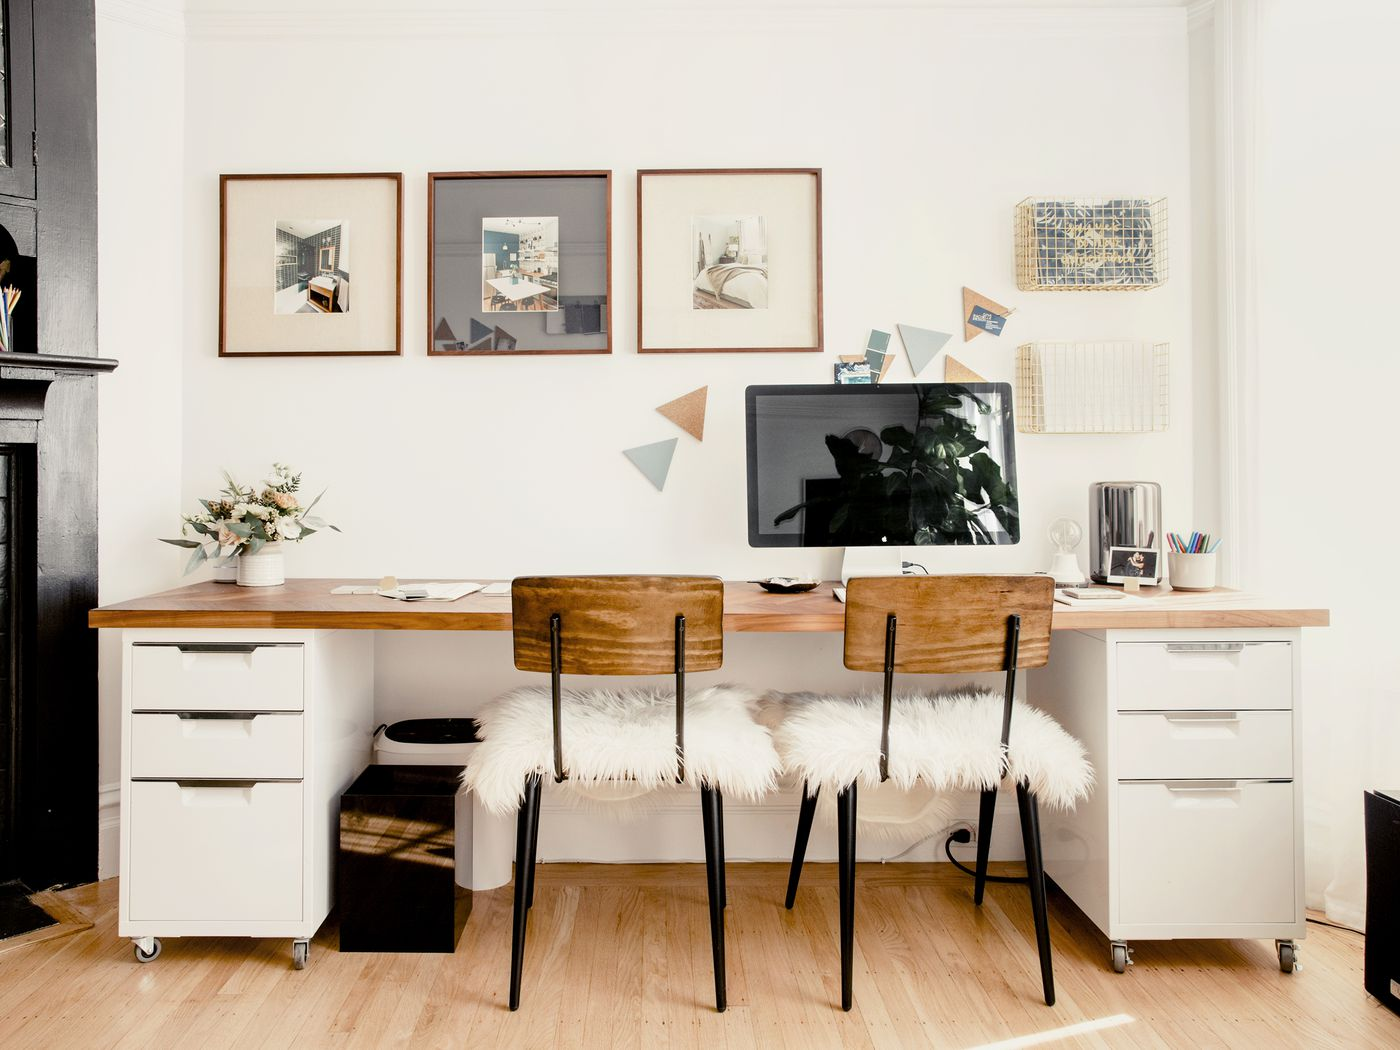 How to work from home during the coronavirus outbreak - Curbed